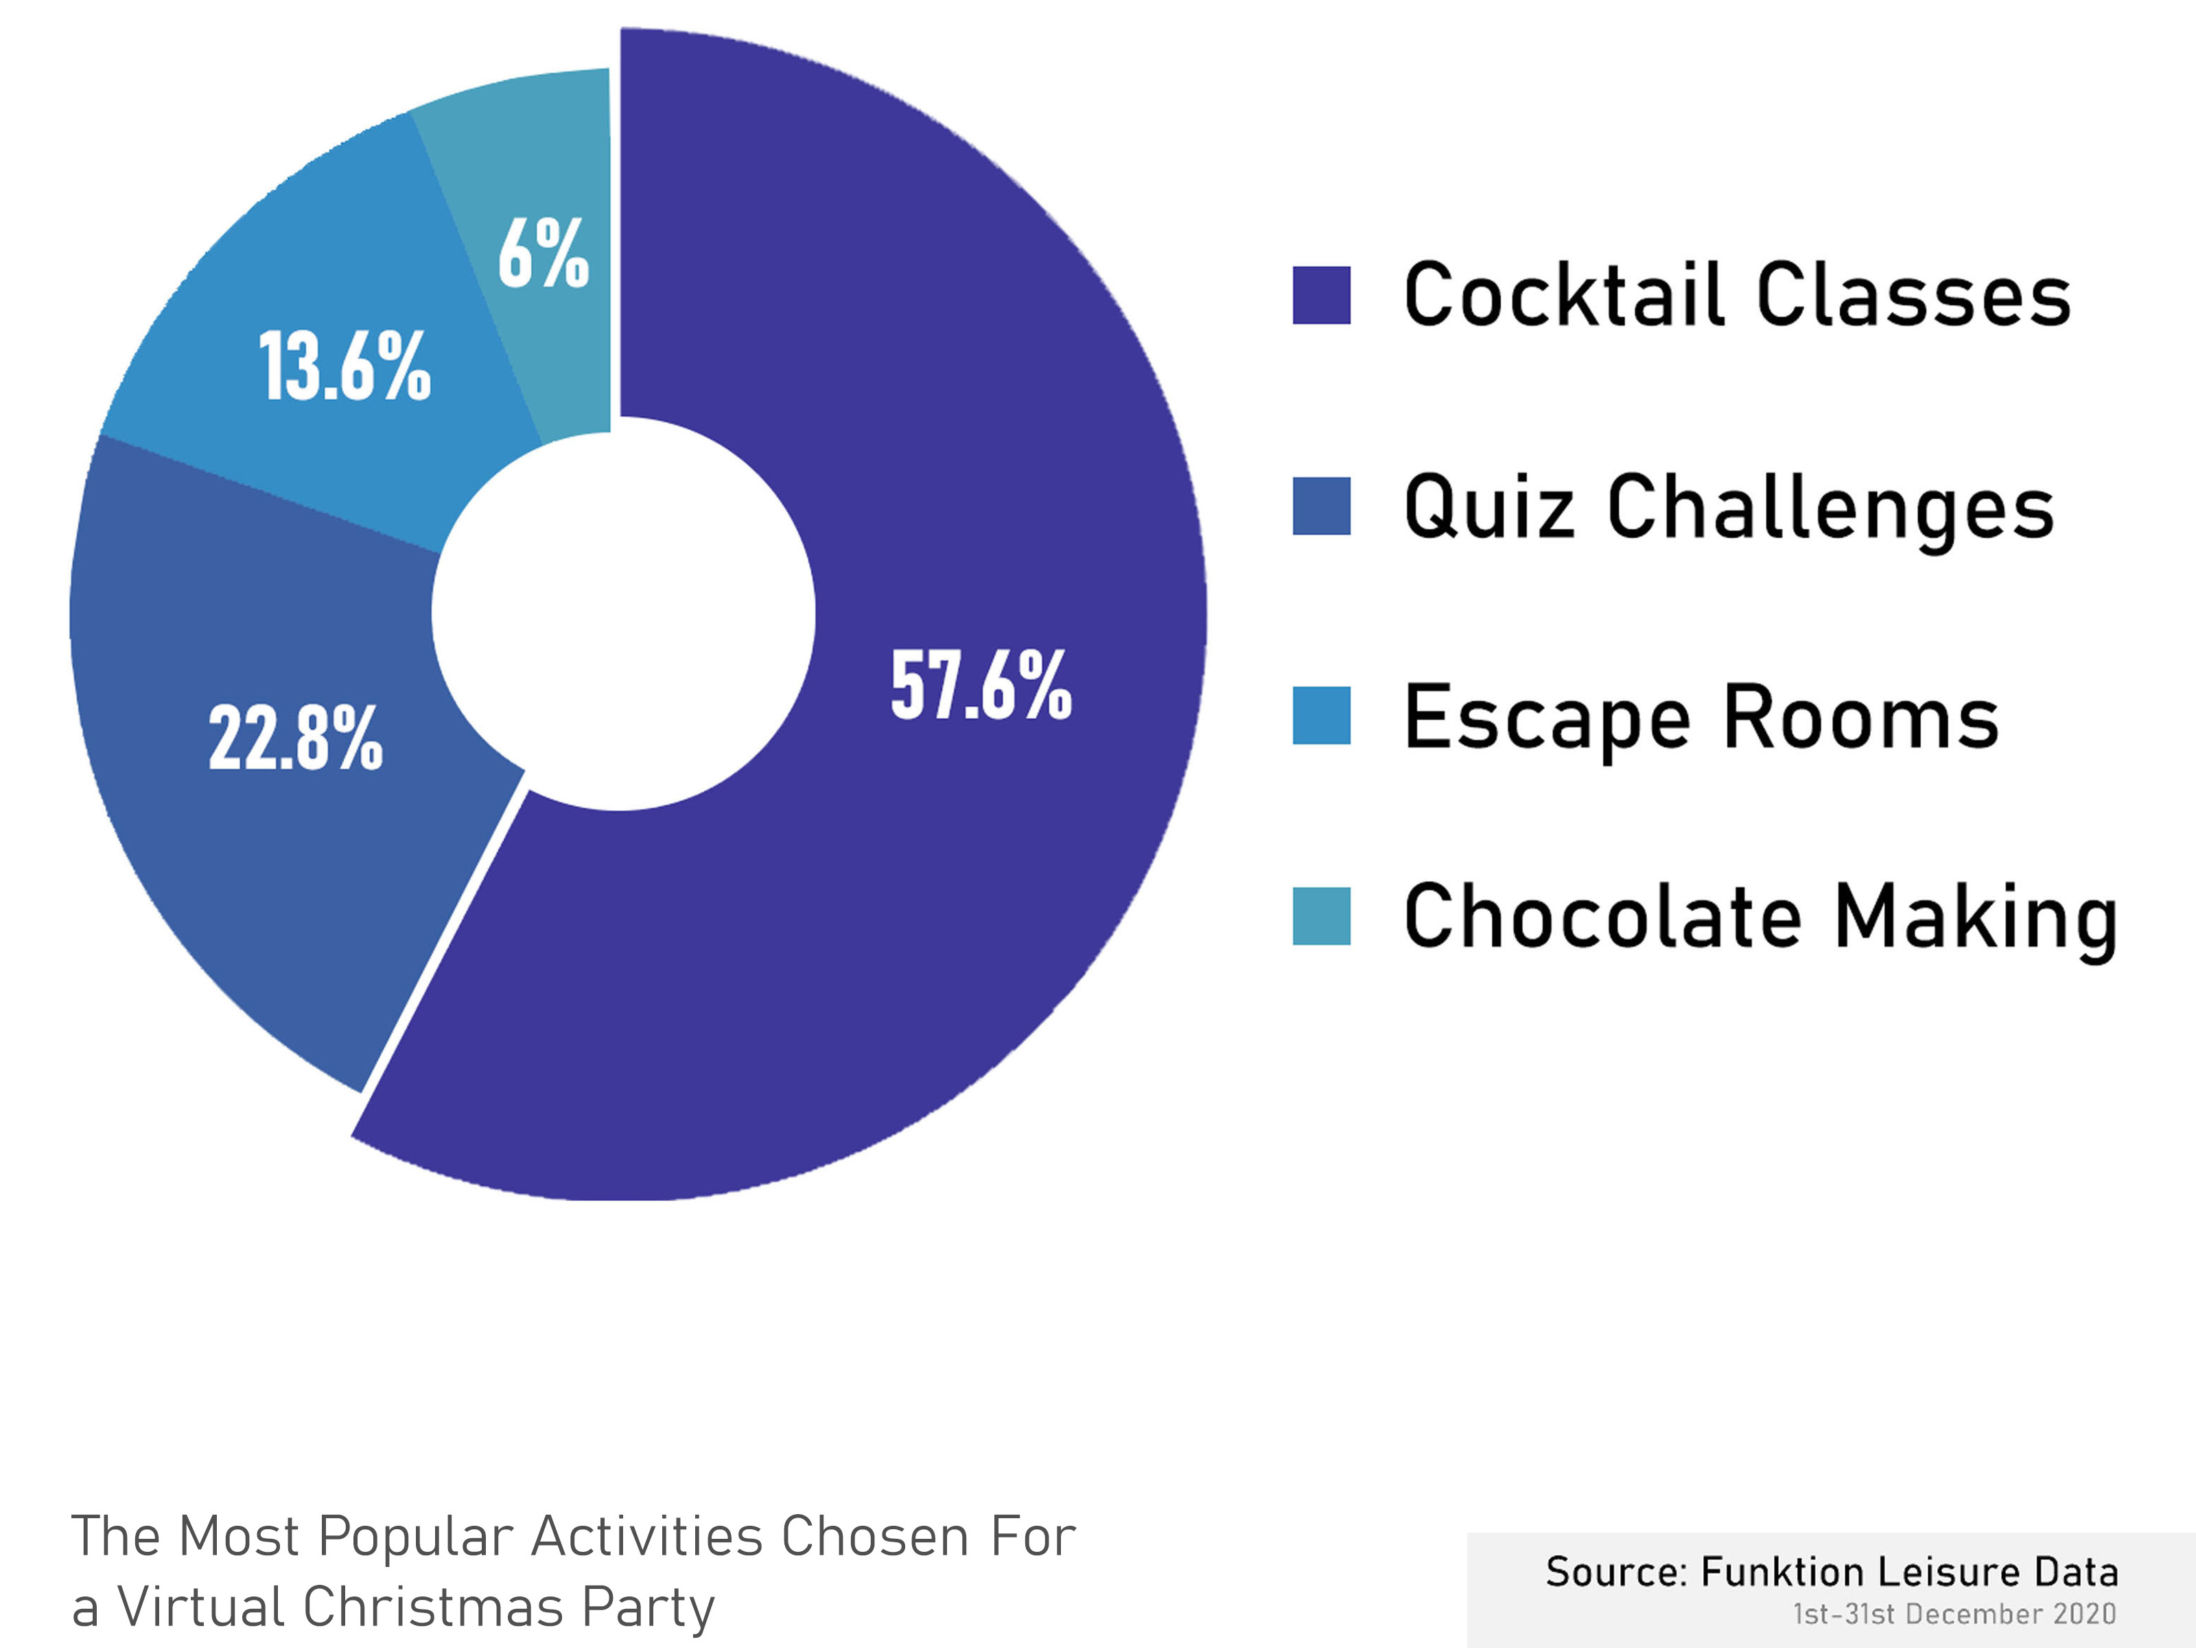 The Most Popular Activities Chosen for a Virtual Christmas Party